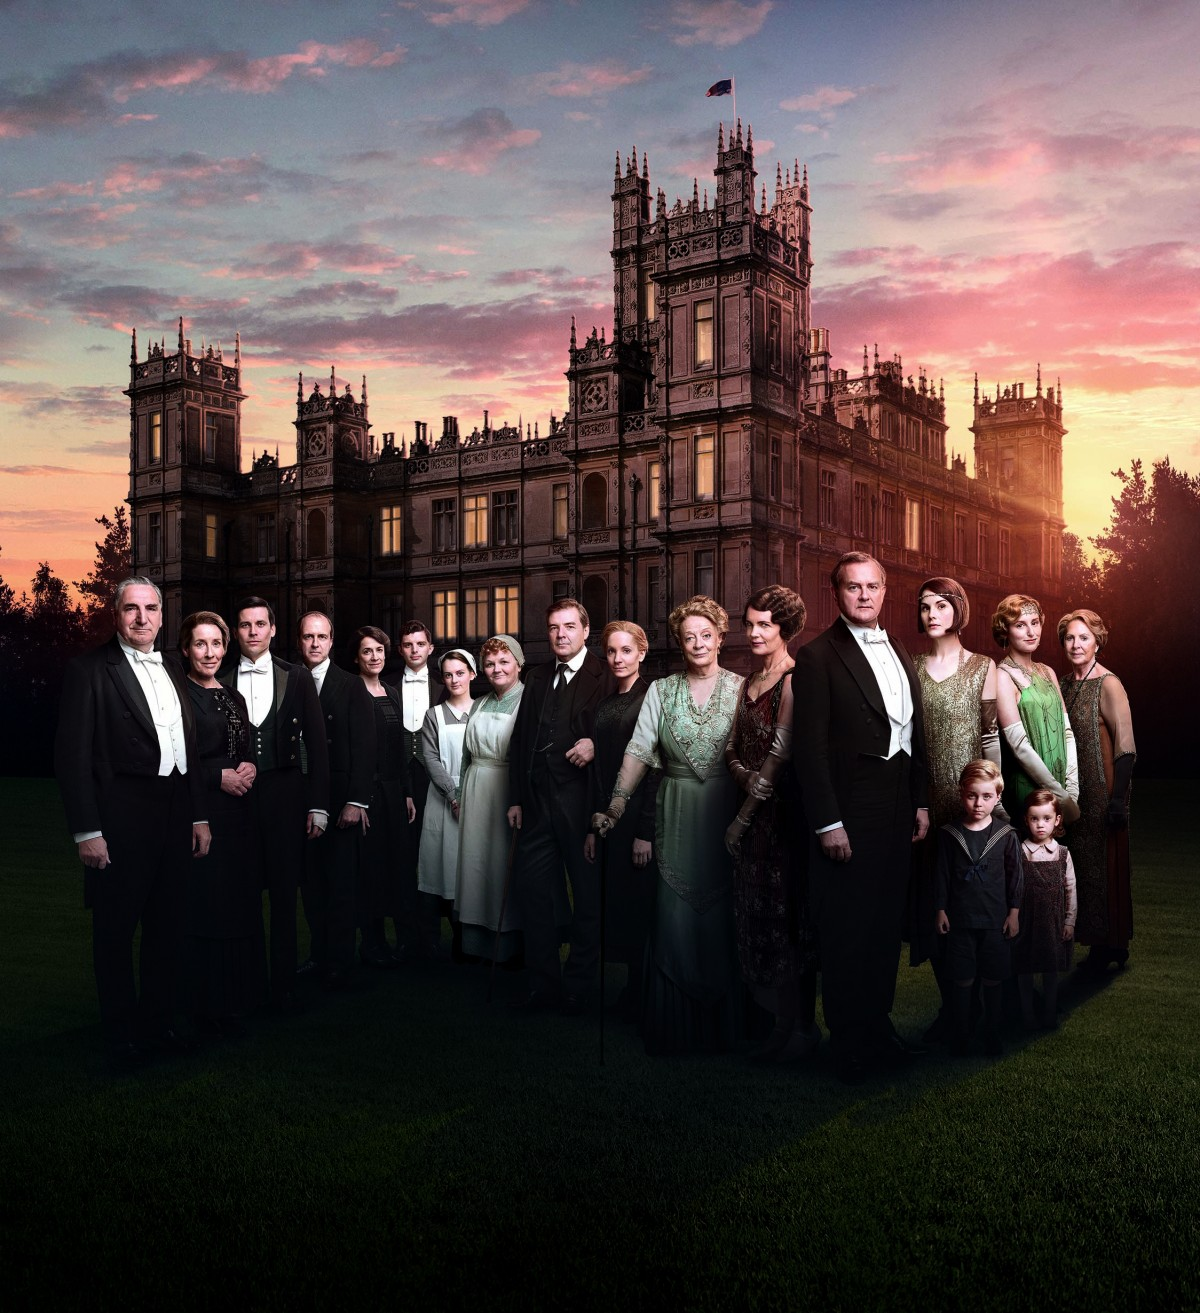 The cast of Downton Abbey stand outside the grand estate in a promo for the finale season.